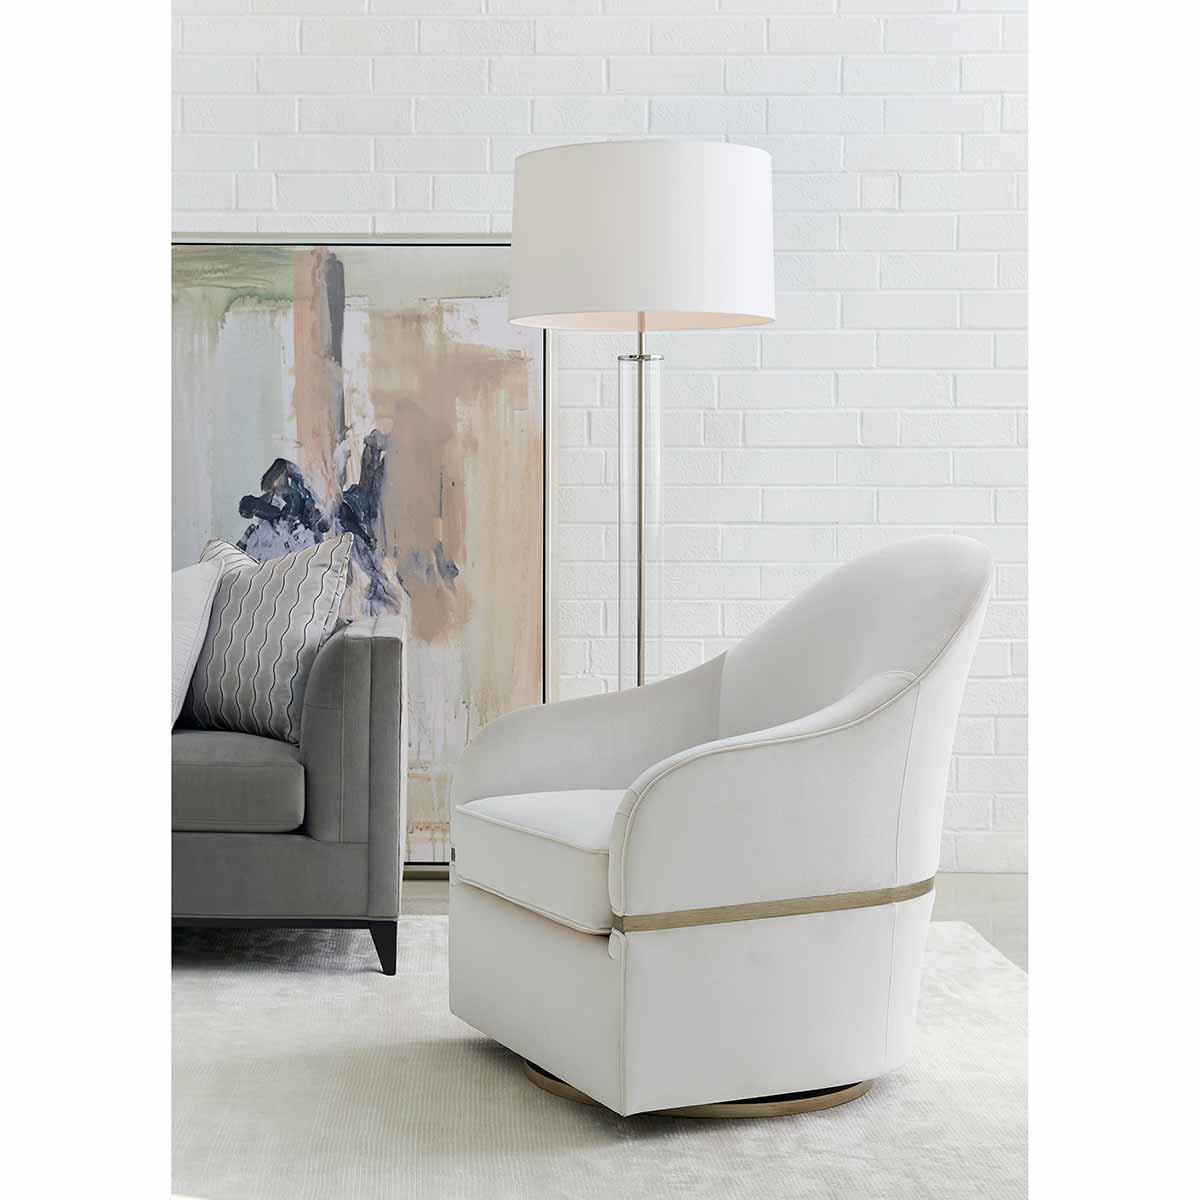 Place Direct | Contemporary Seating With Swivel Motion Or Casters Inside Twirl Swivel Accent Chairs (View 20 of 25)